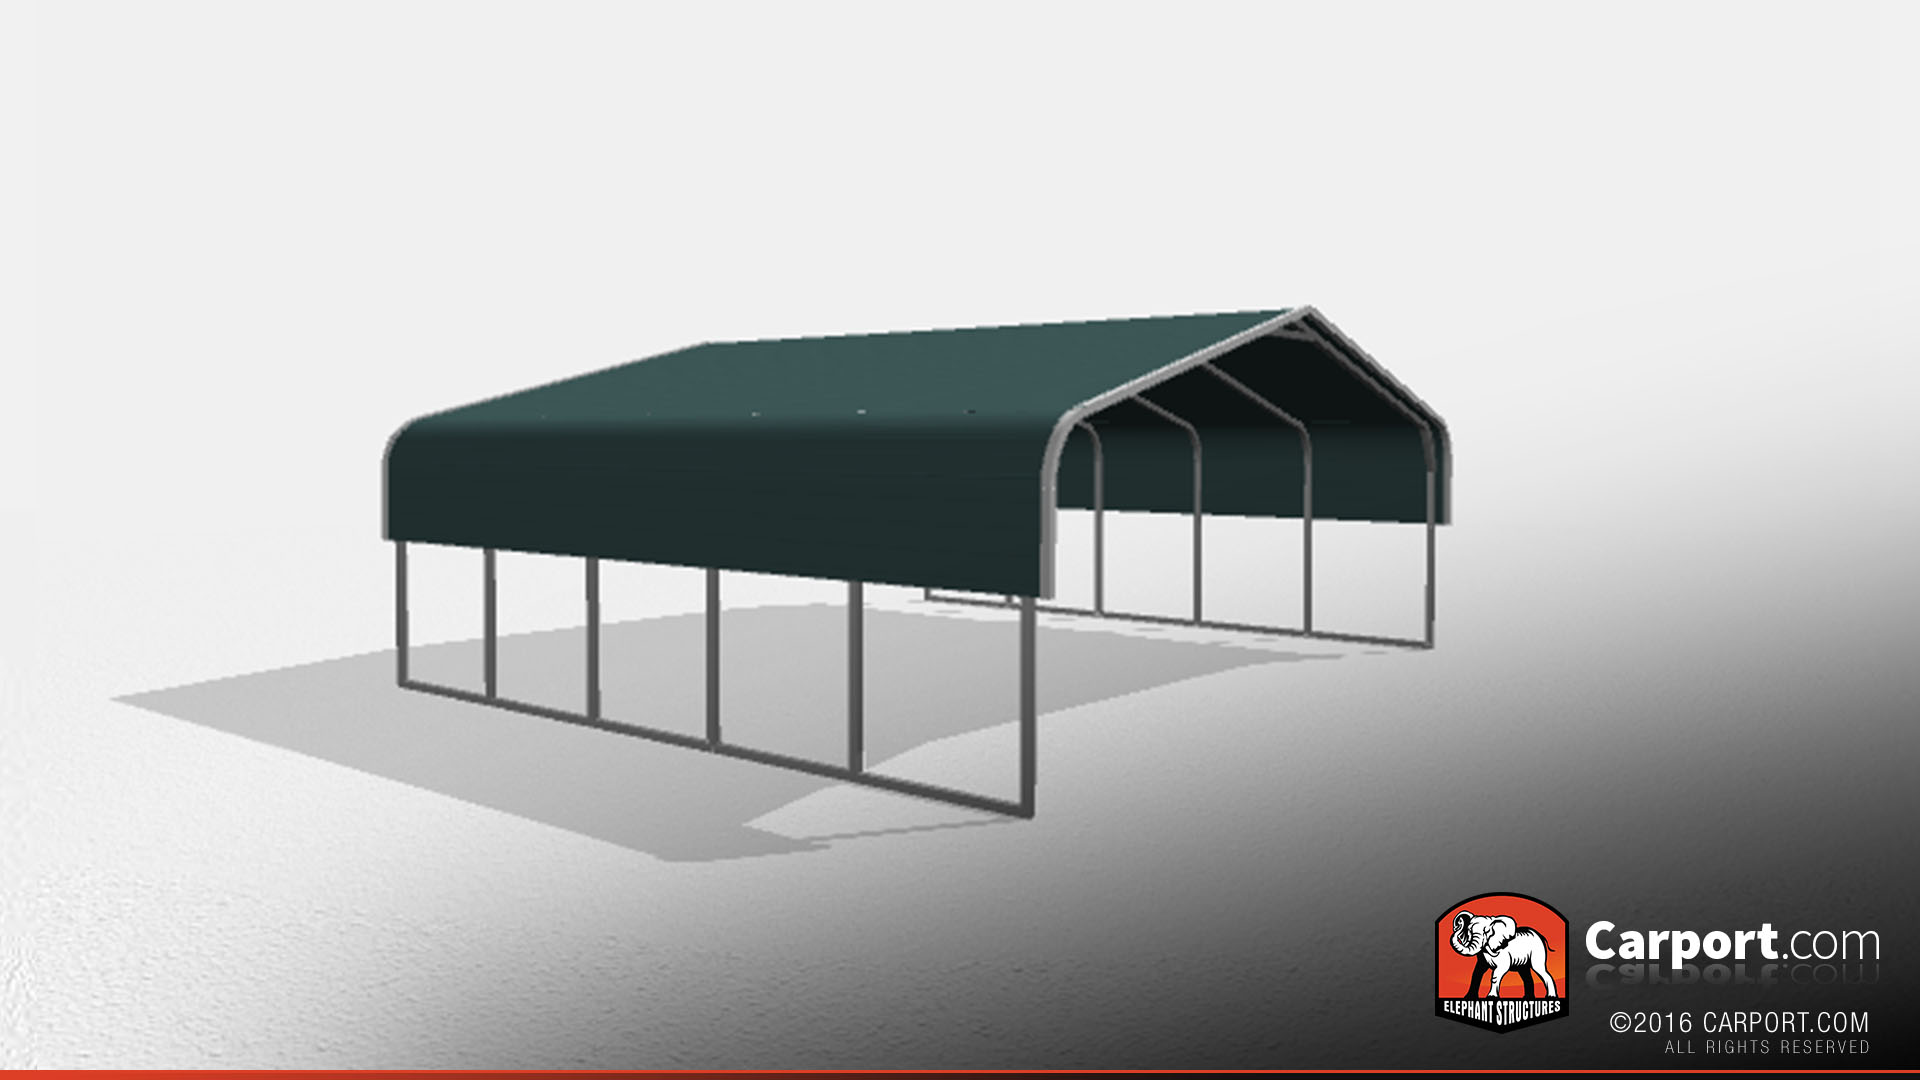 Two Car Metal Carport 24' x 21' x 7' | Shop Carports Online!